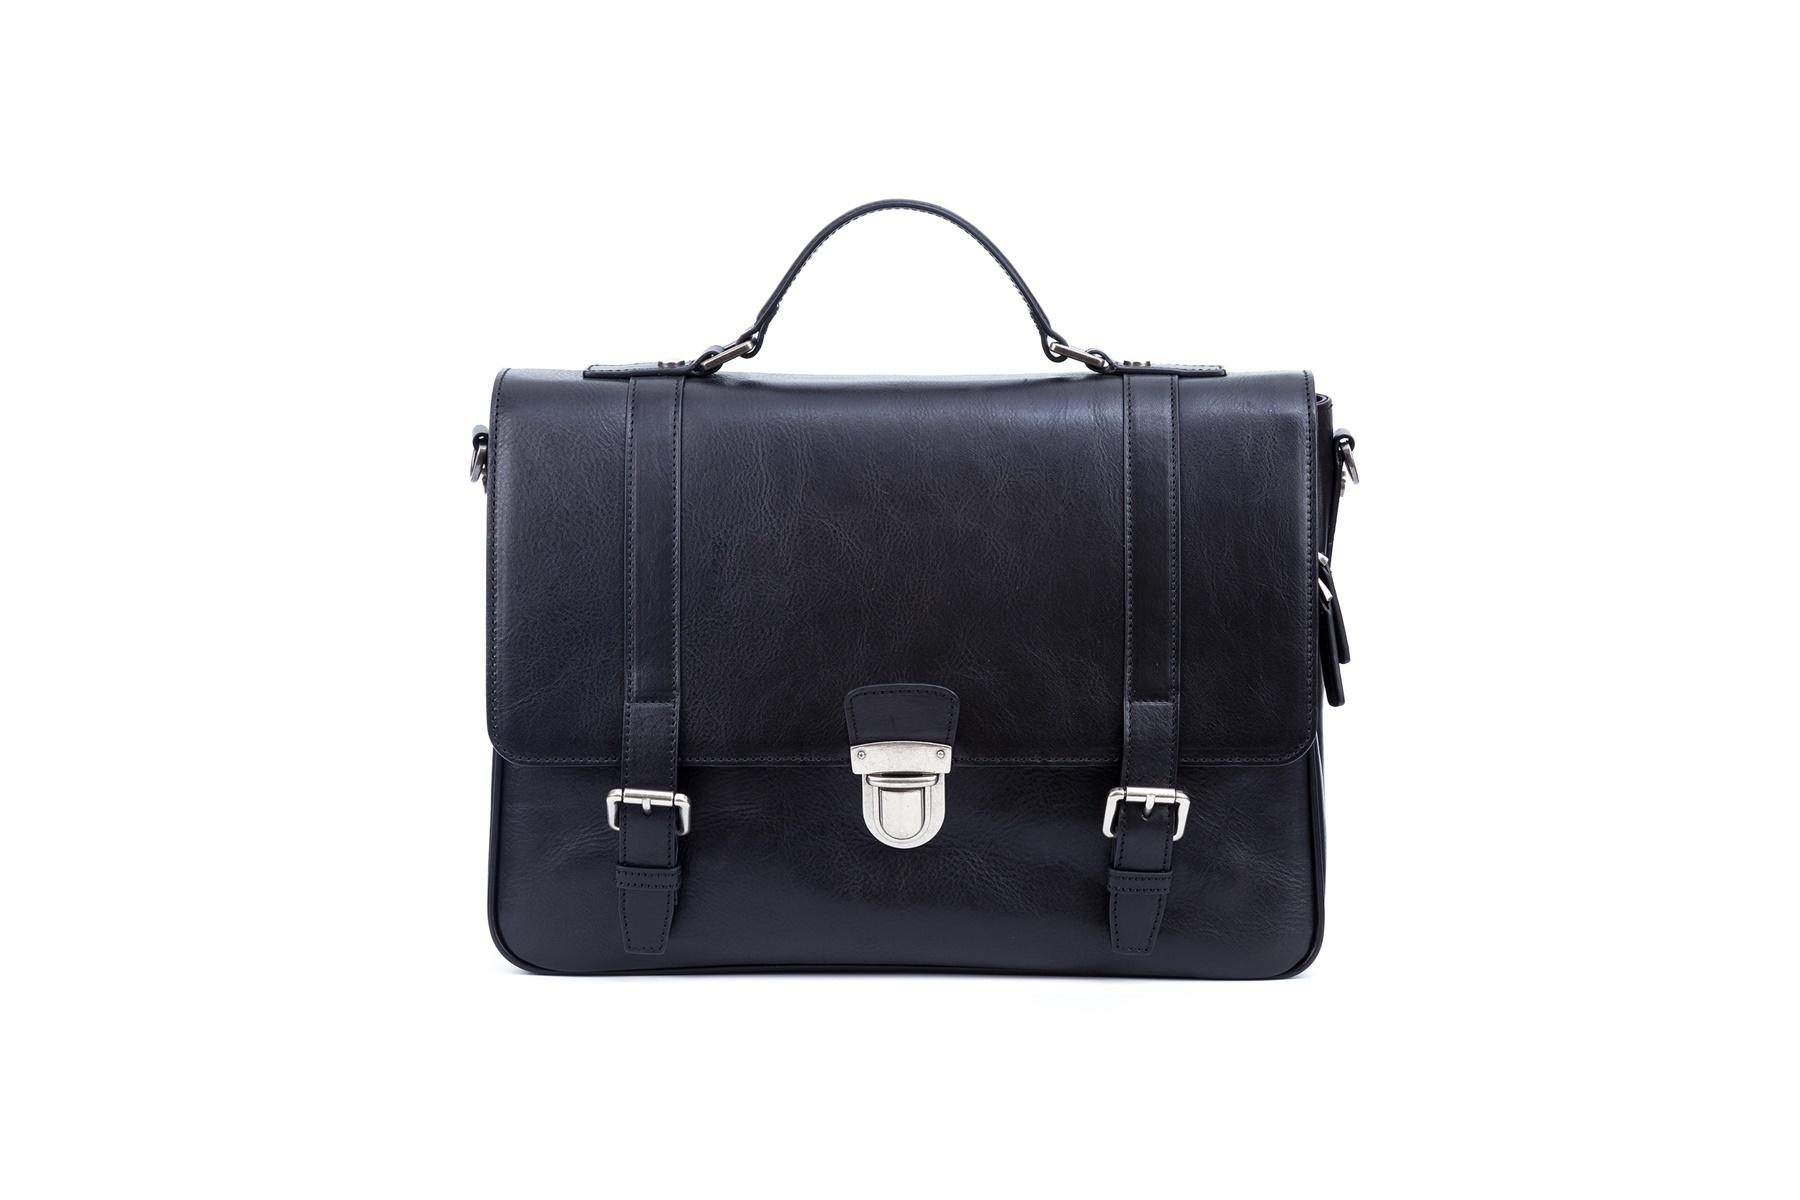 GF bags-Find Business Bag Mens Fashion Messenger Bag From GF Bags